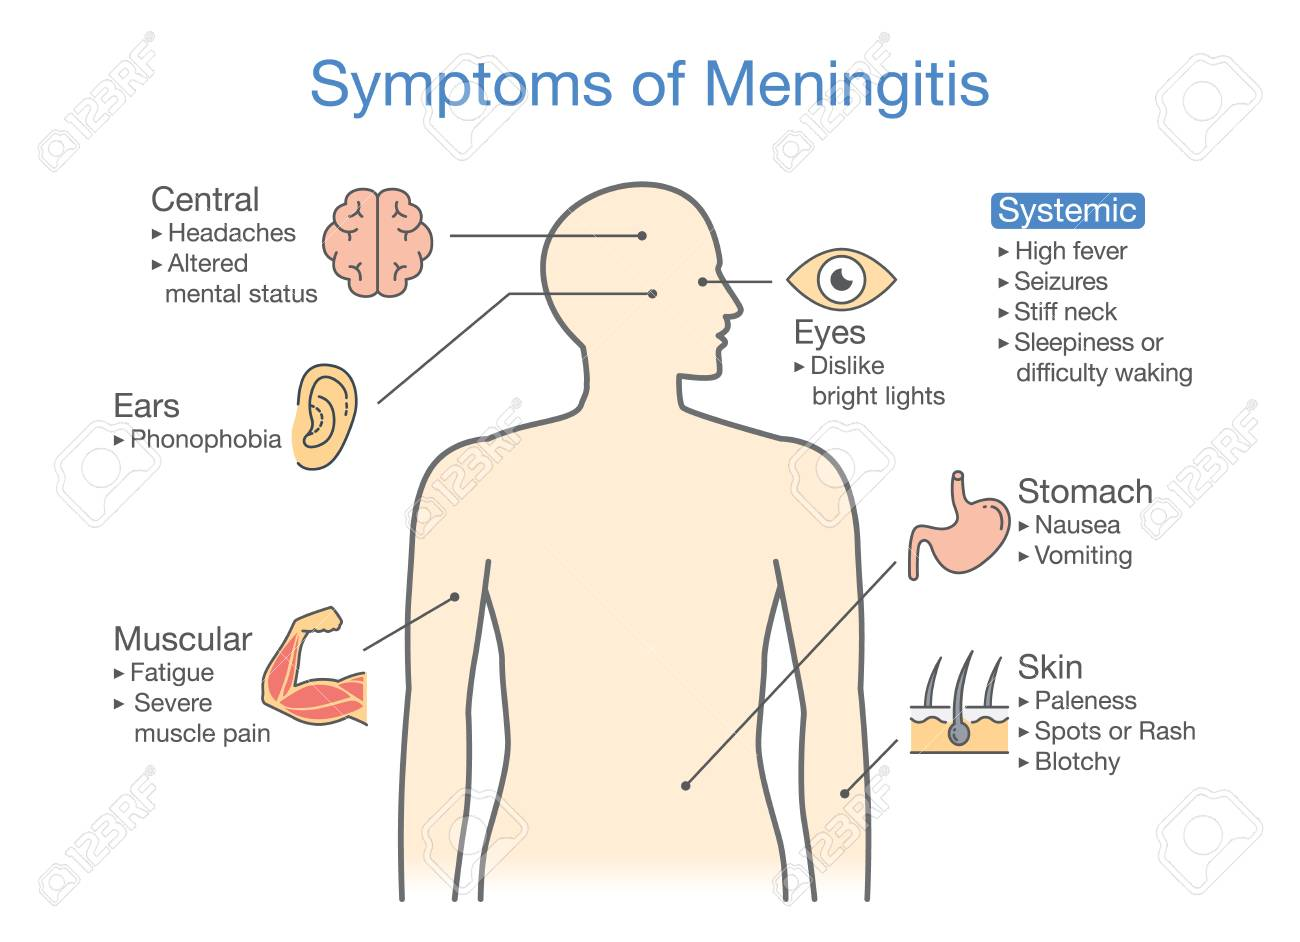 hight resolution of symptoms of meningitis patient diagram to showing signs of disease stock vector 89327353